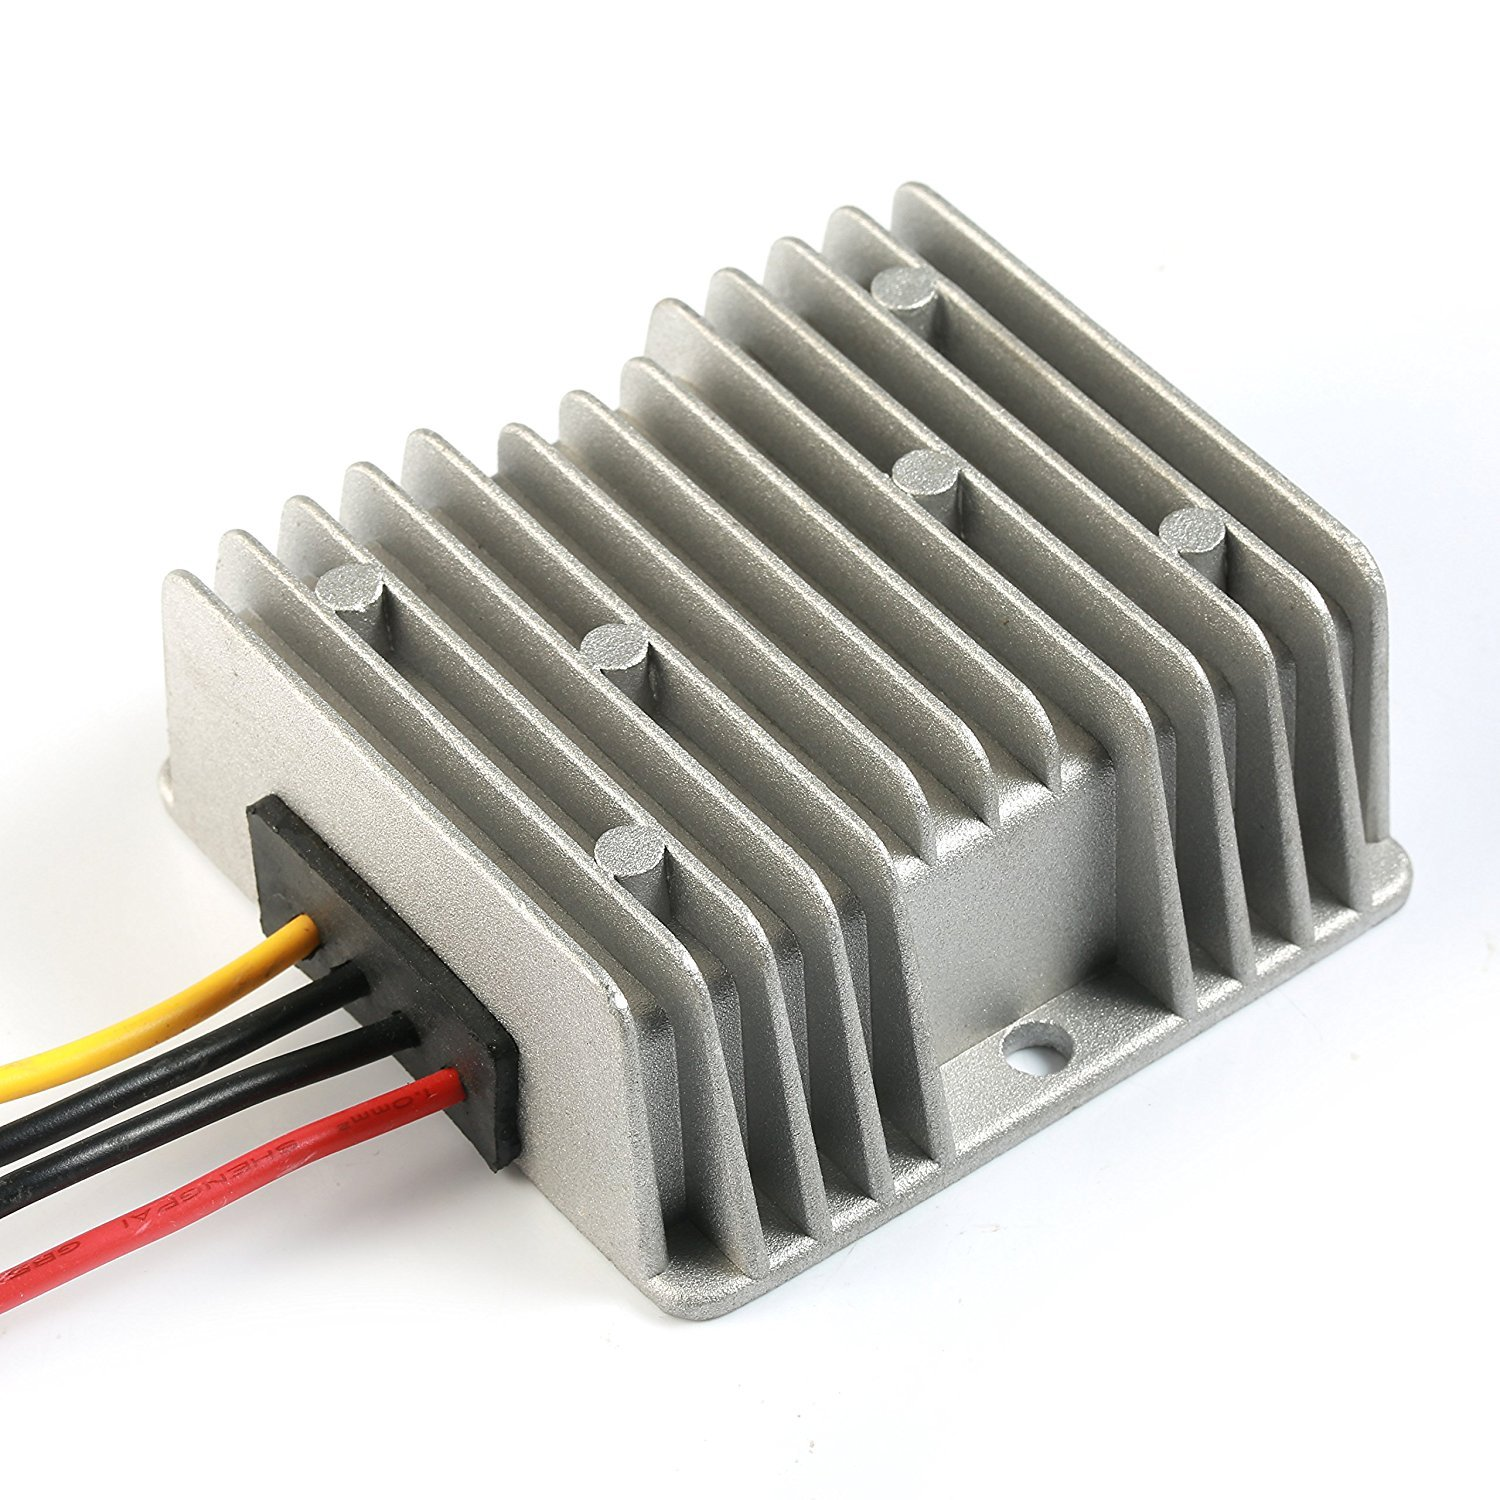 JahyShow US Ship DC to DC 12v Step Up to 24V 3A 72W Waterproof Converter Voltage Regulator Module Transformer by JahyShow (Image #2)